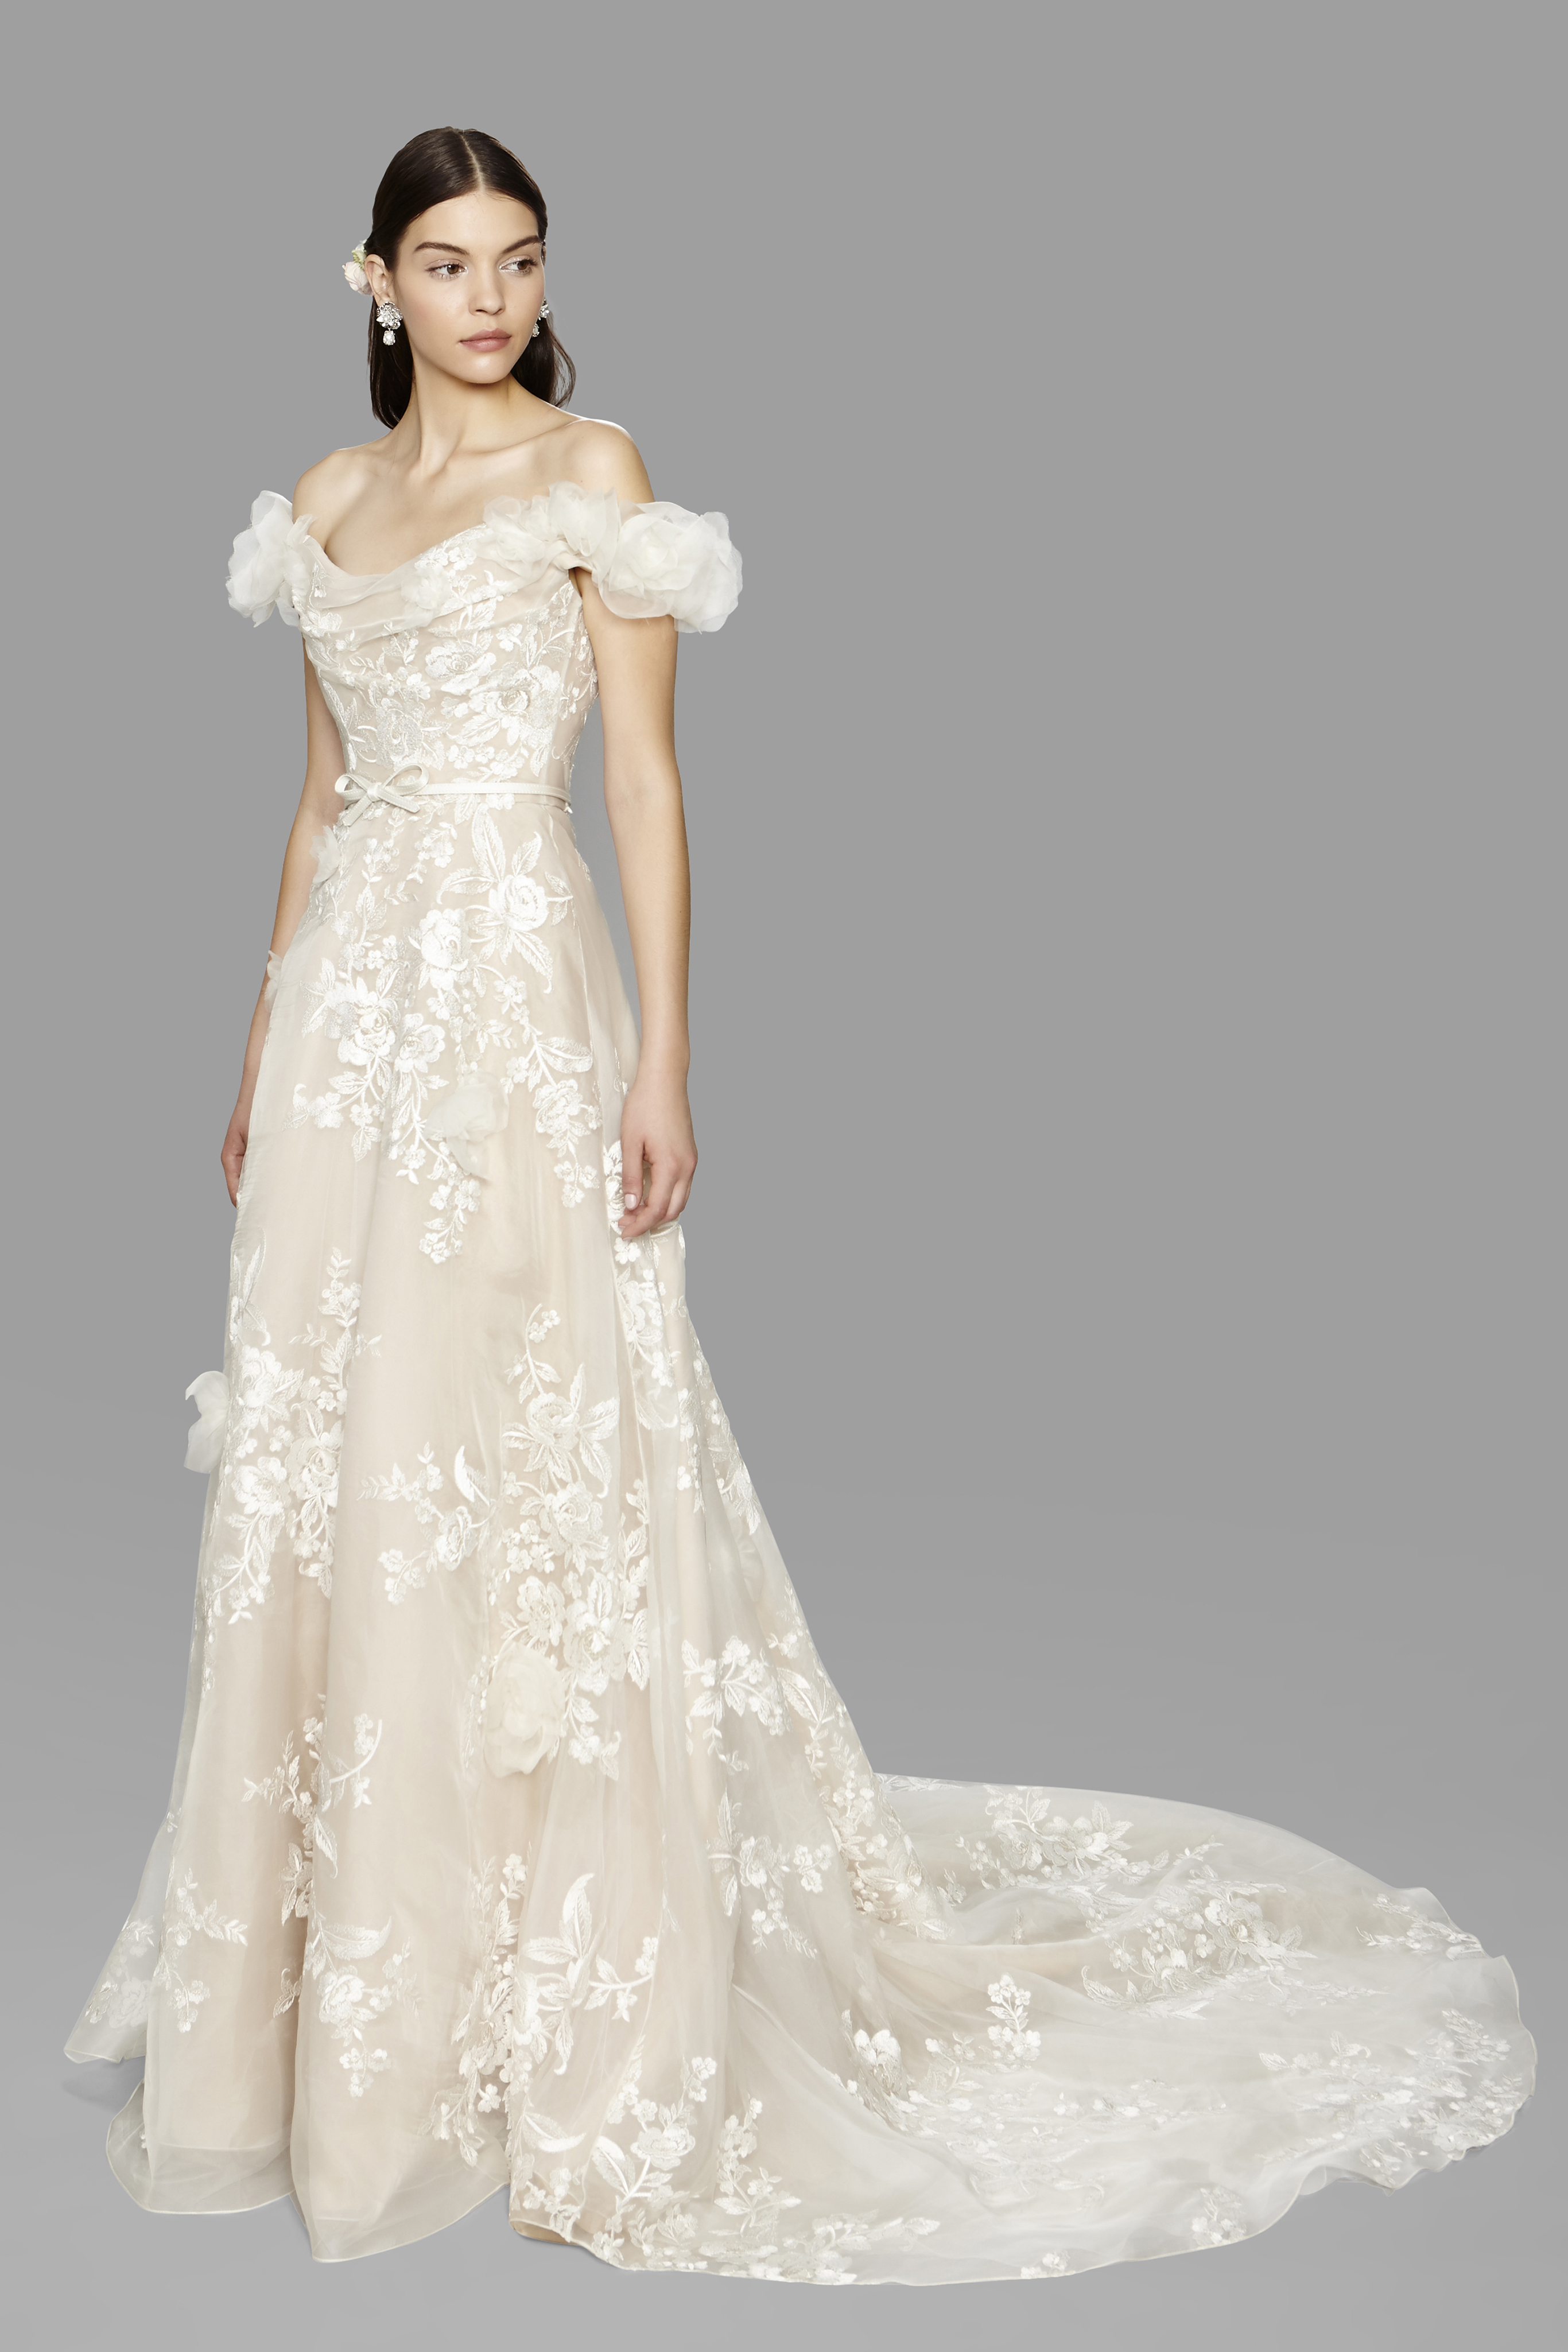 Bridal Dresses Trends 2017 In : Unexpected bridal trends from fall week